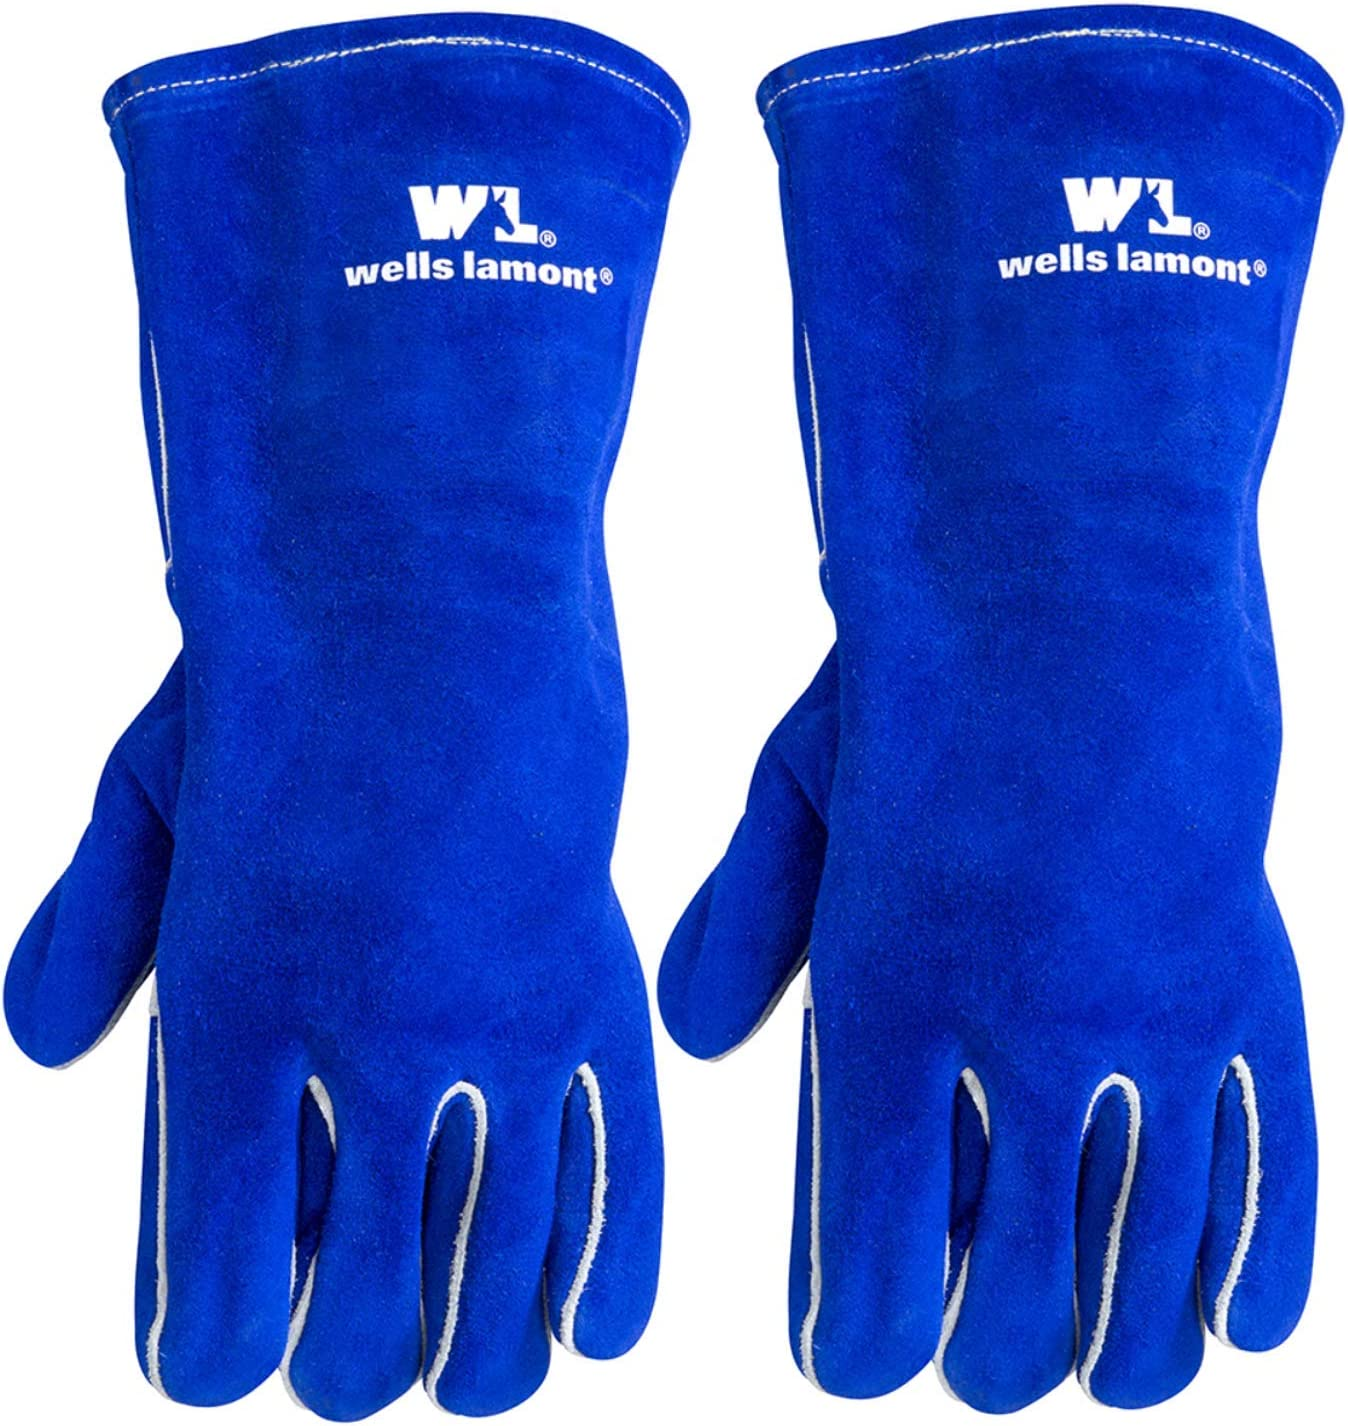 2 Pair Pack Left Hand Max 68% OFF Only Welding Gloves Arlington Mall Large Leather Lined